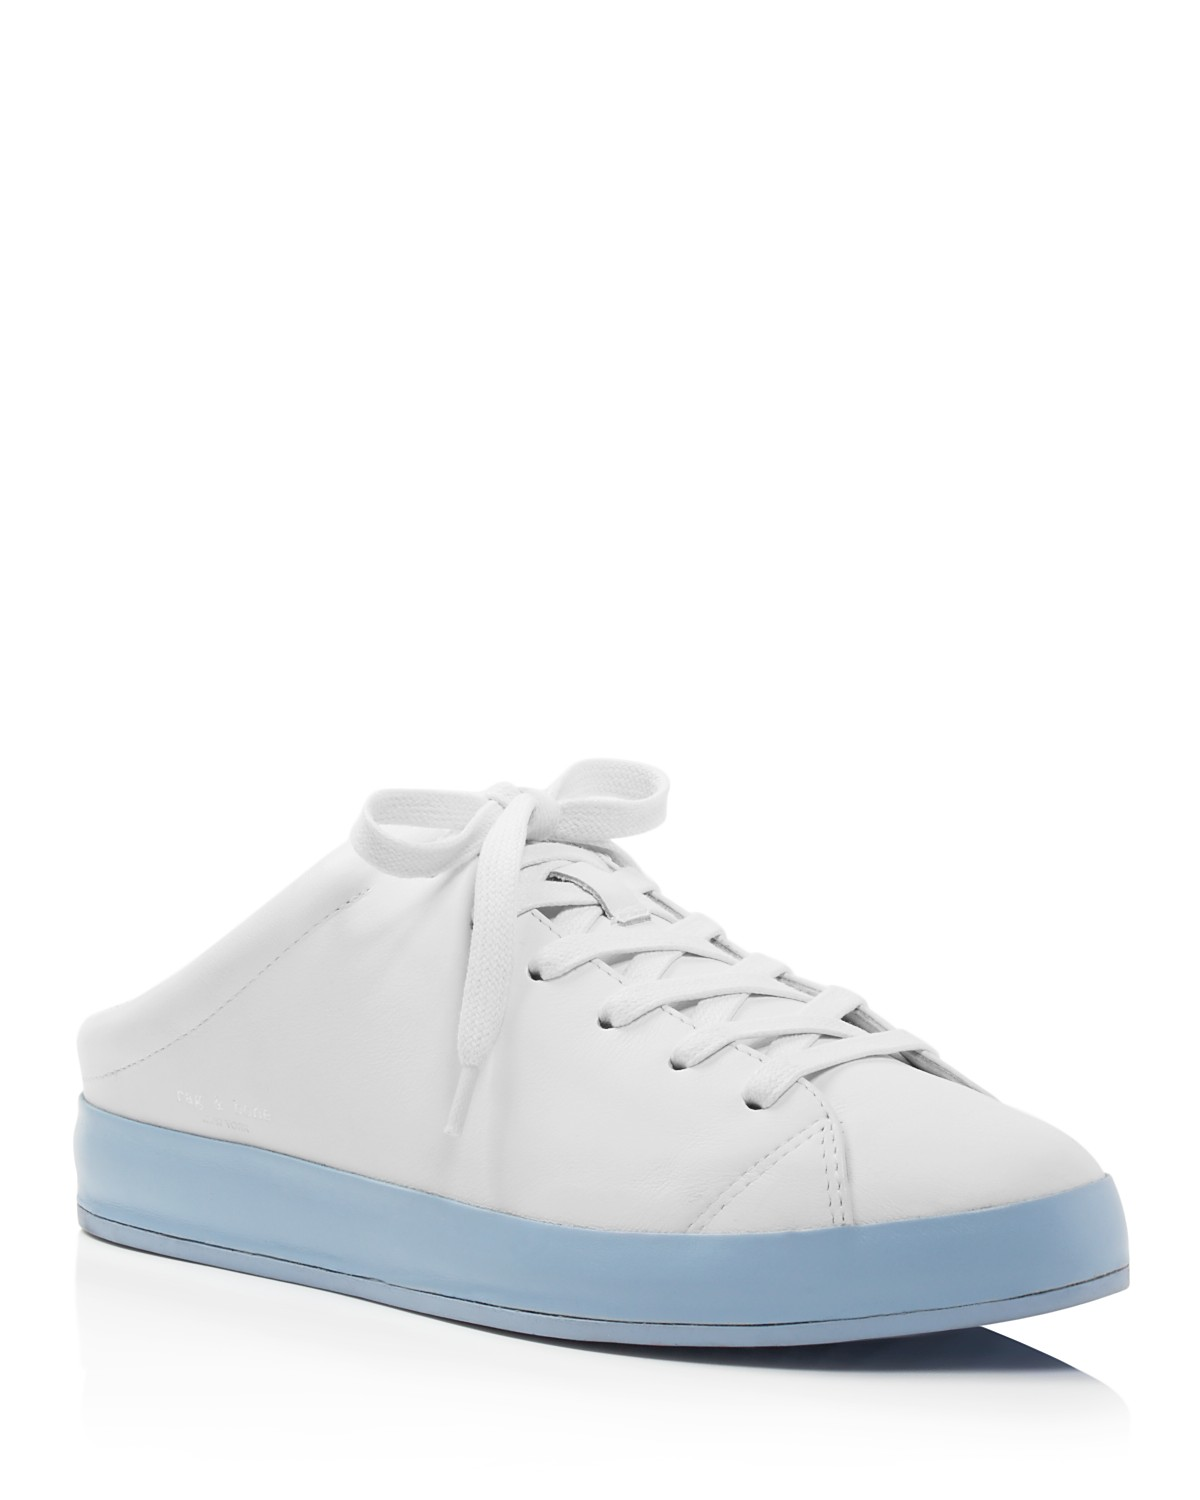 RAG&BONE Women's Rb1 Leather Sneaker Mules 1H6ZvEsL